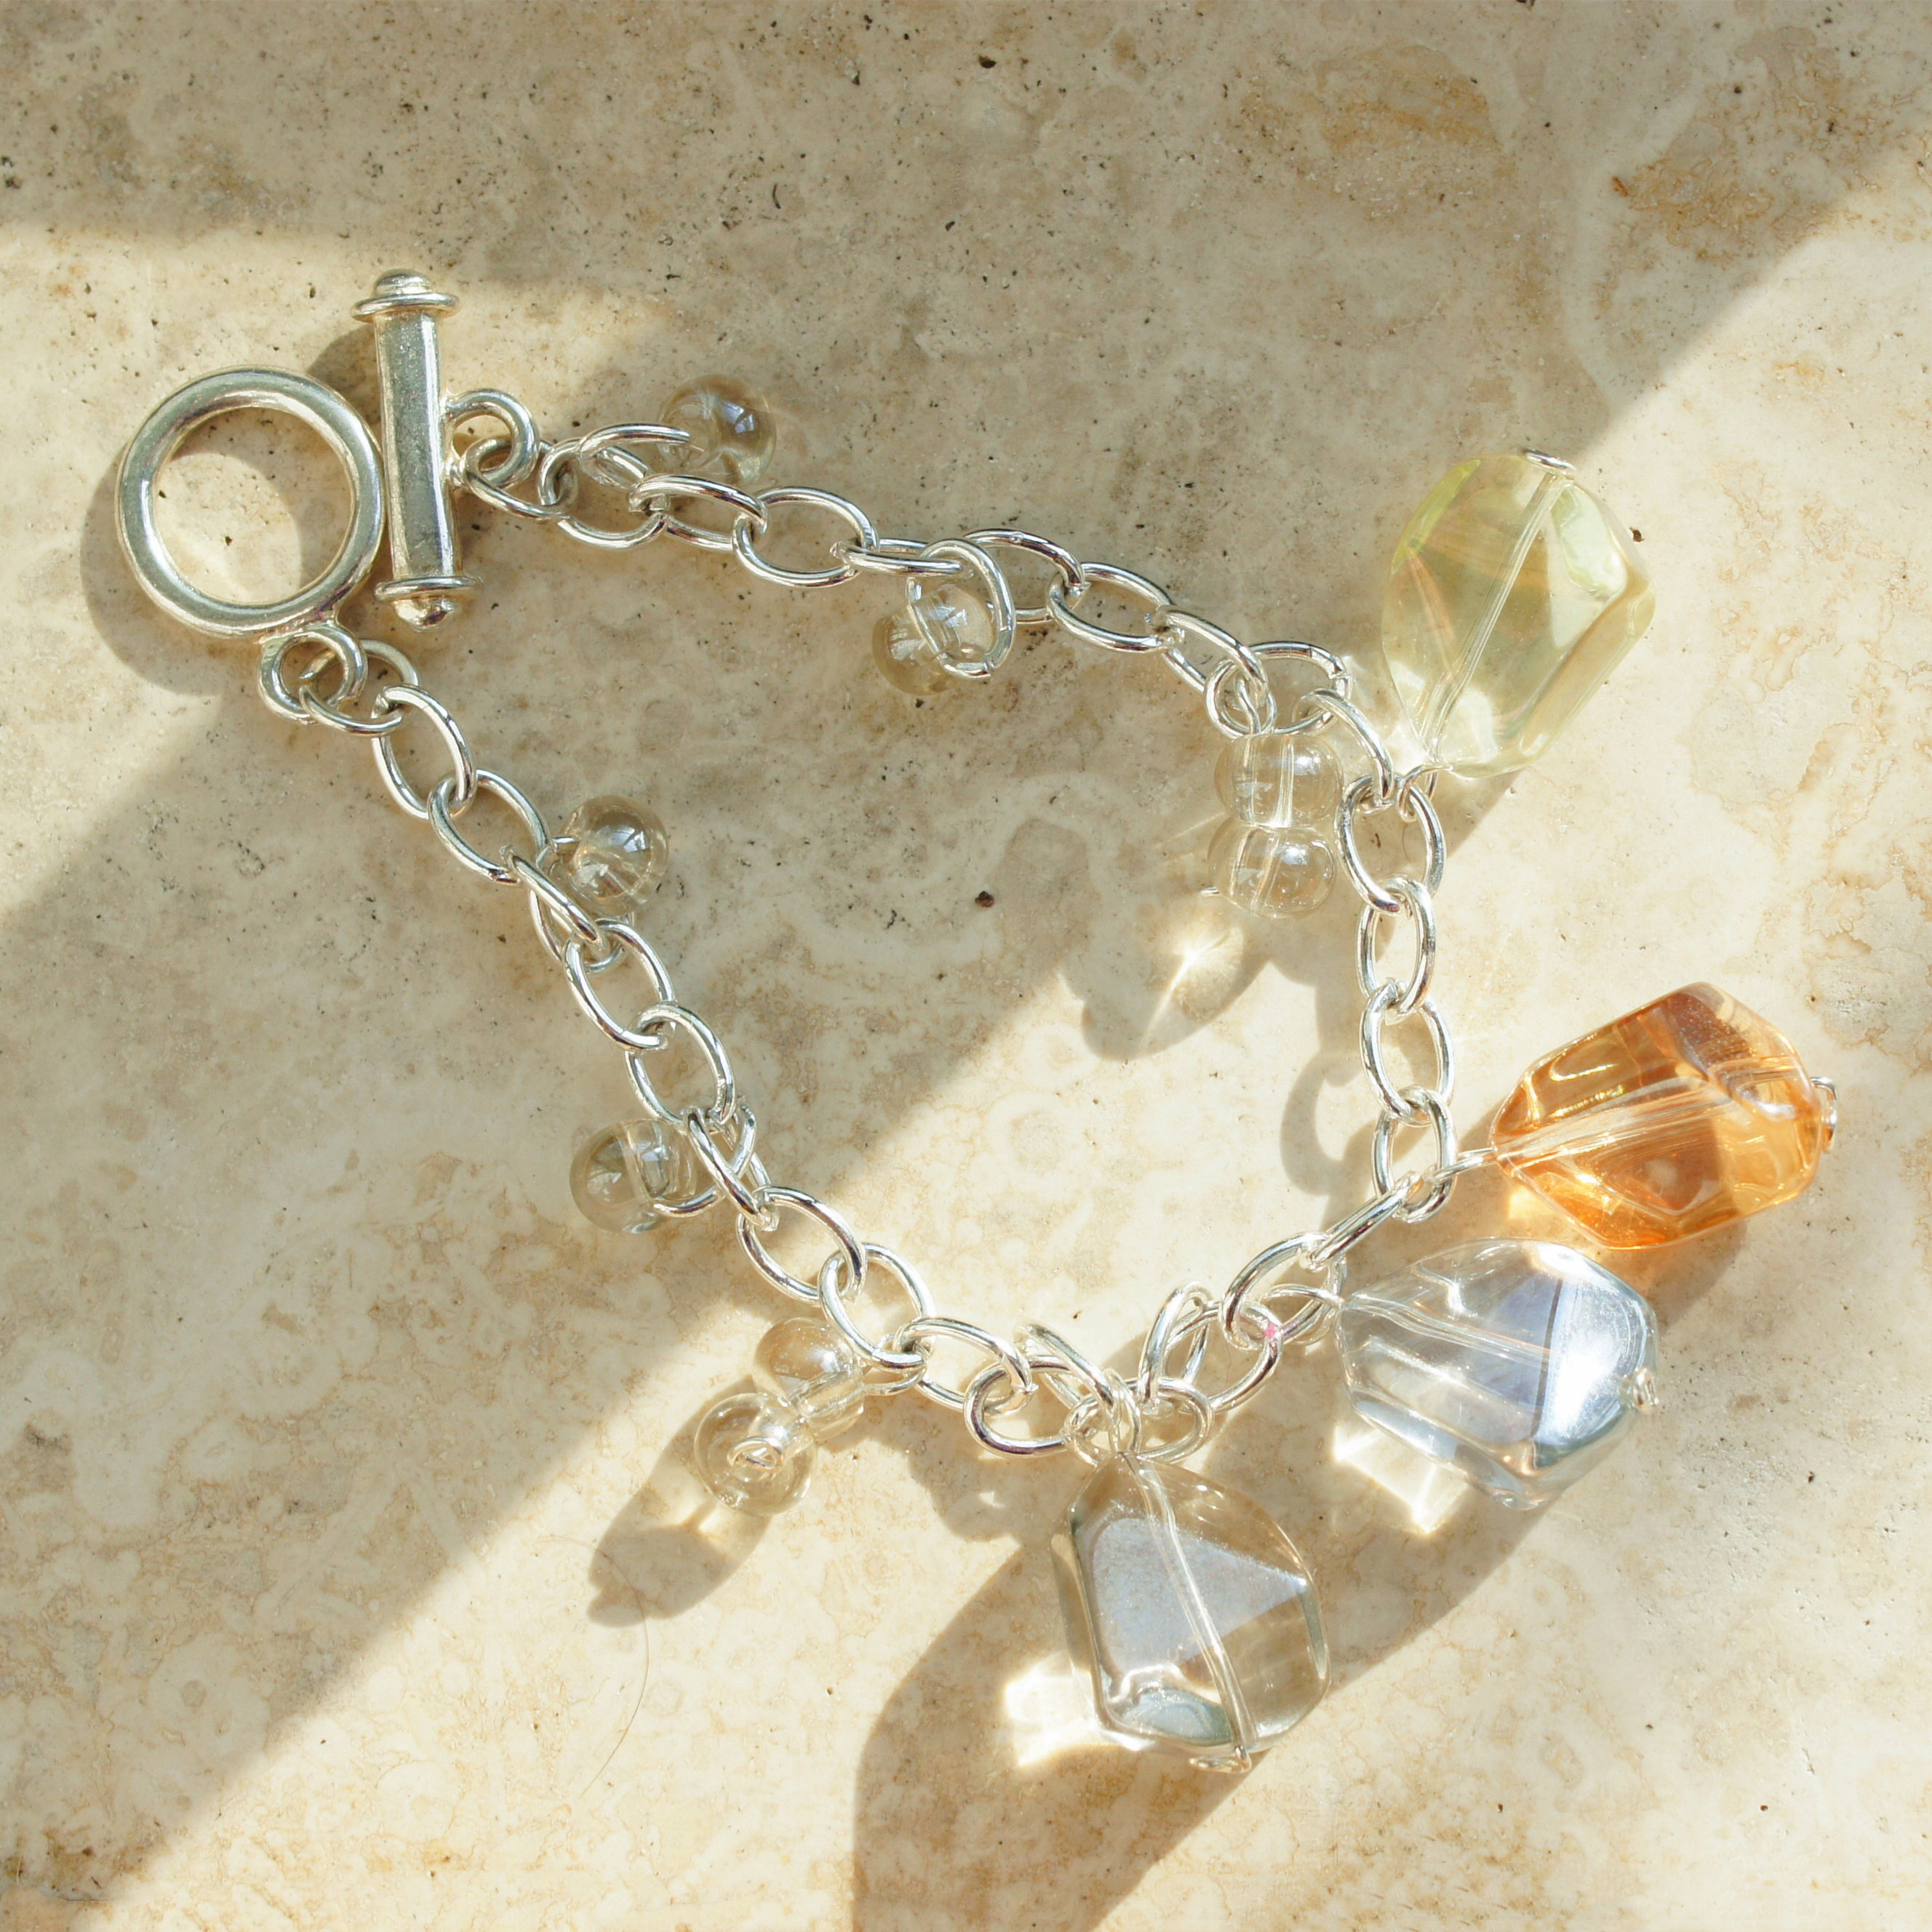 In the Dawn/Dusk Sterling Silver-plated Bracelet